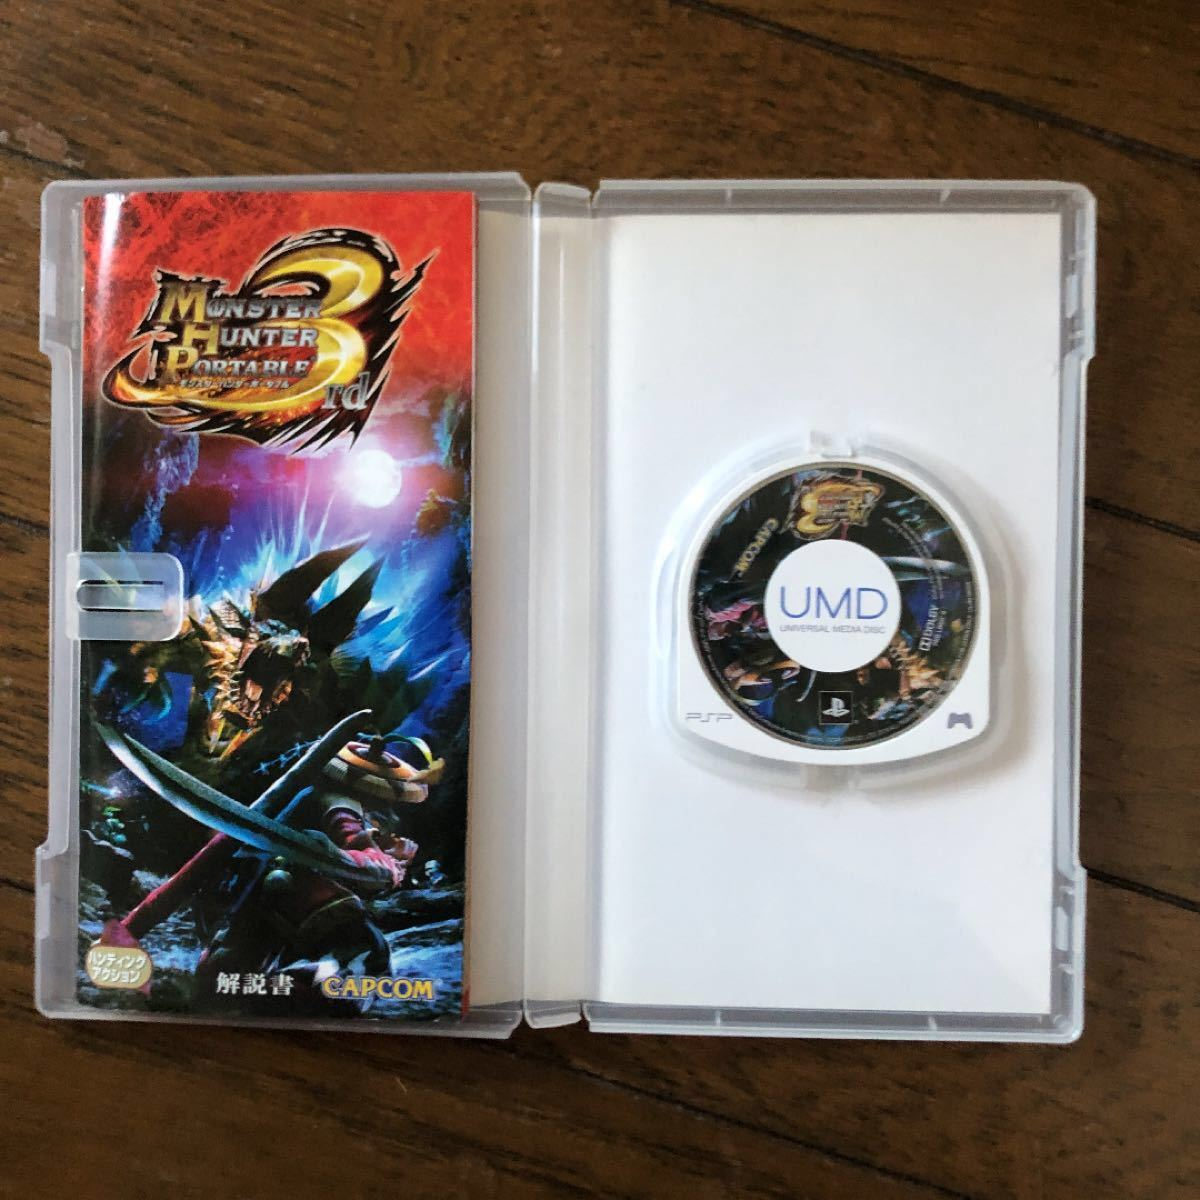 【PSP】 モンスターハンター ポータブル 3rd [PSP the best]ソフト4本セット